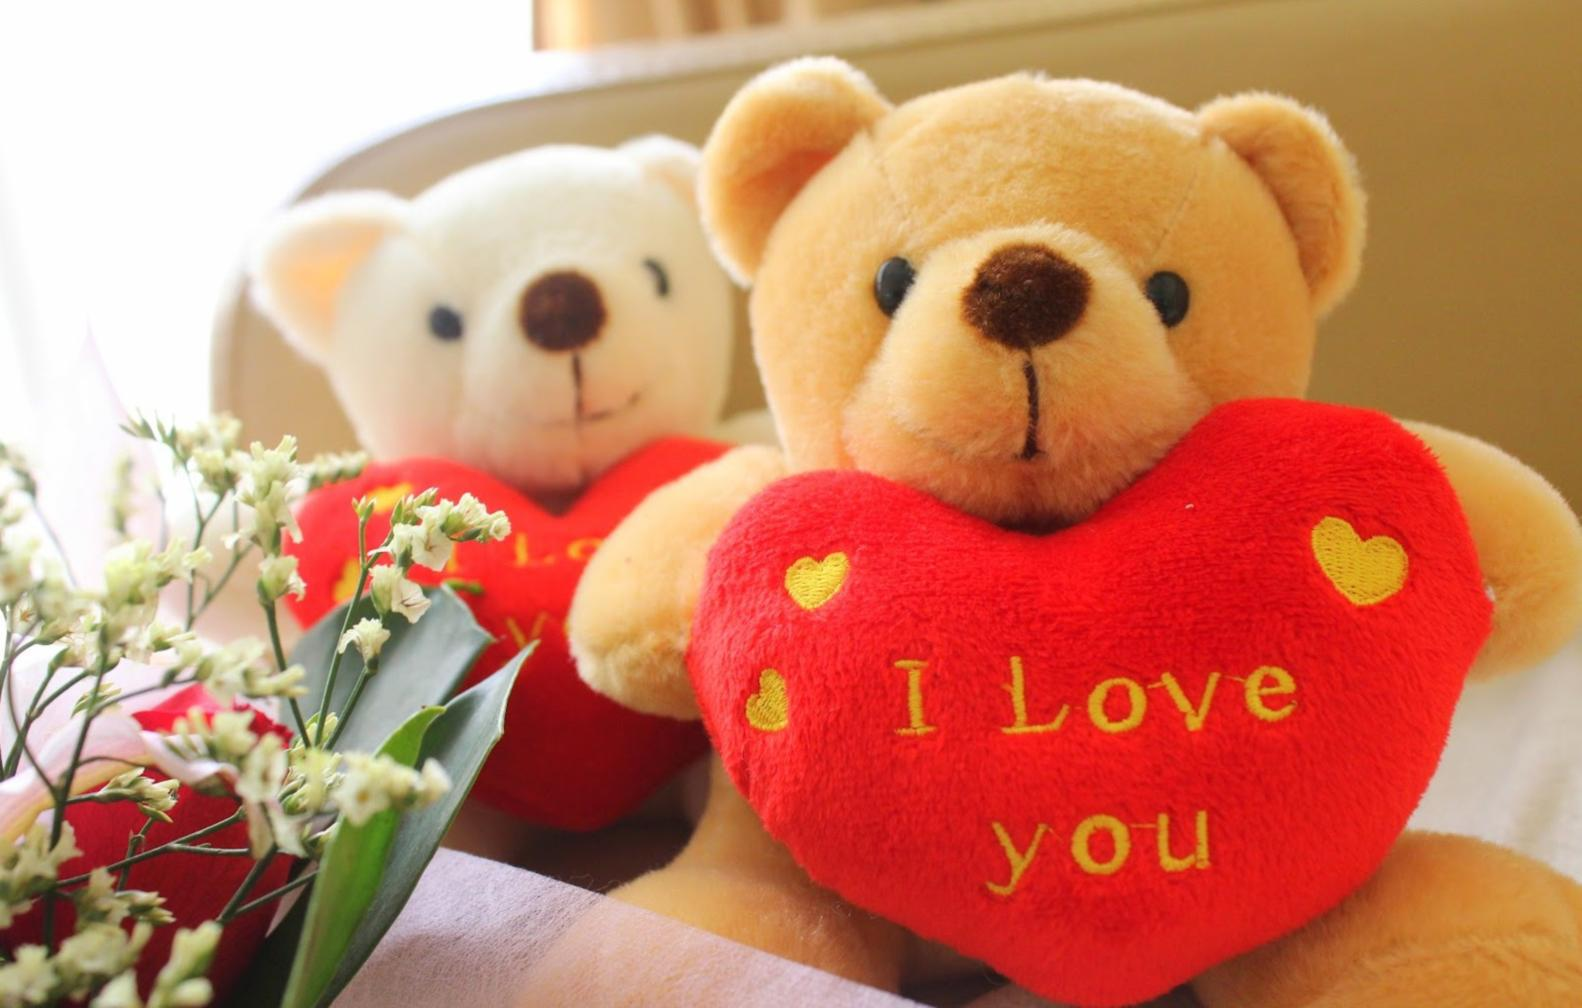 Cute Wallpapers With Quotes For Whatsapp Happy Teddy Day Quotes Sms Images Hd Of Teddy Bears